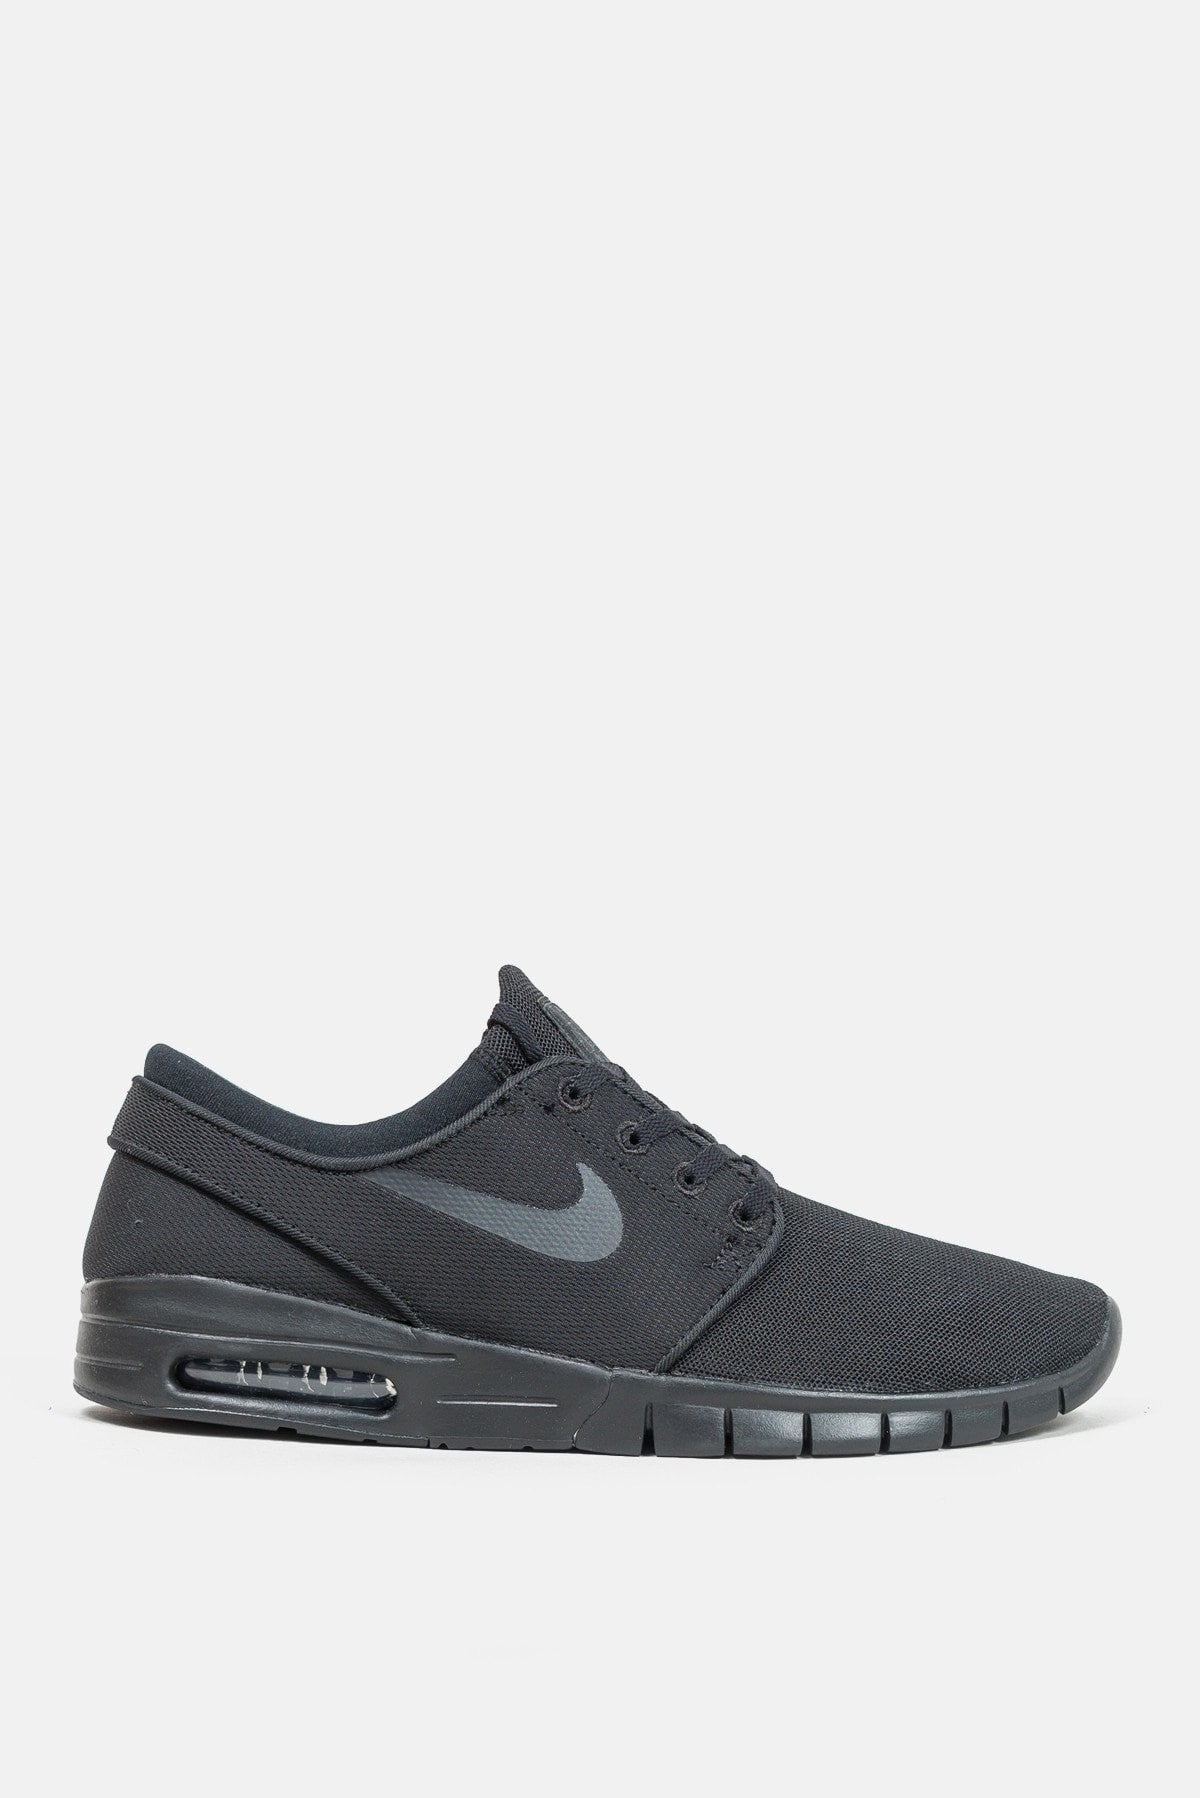 Nike SB Stefan Janoski Max Shoes available from Priory be5e417c8f